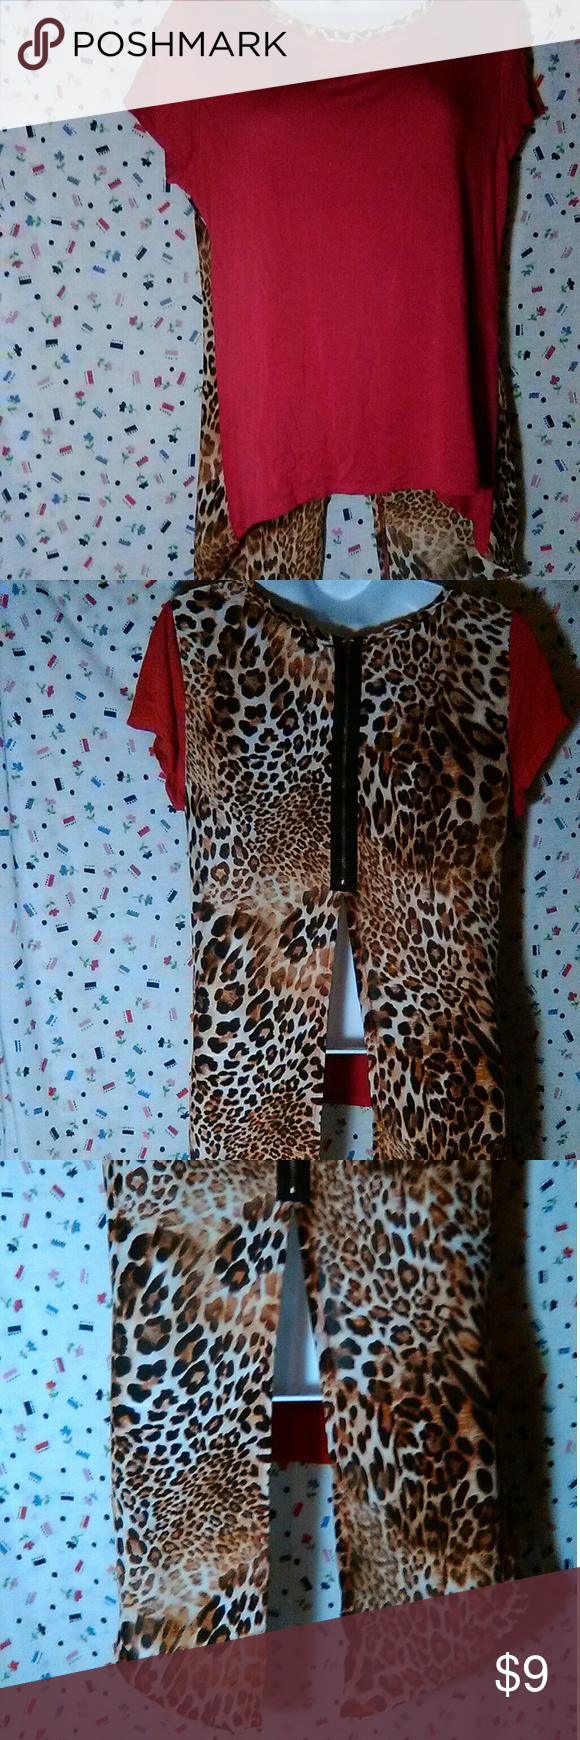 Discreet Red soft cotton material in front, leopard spot in back ...